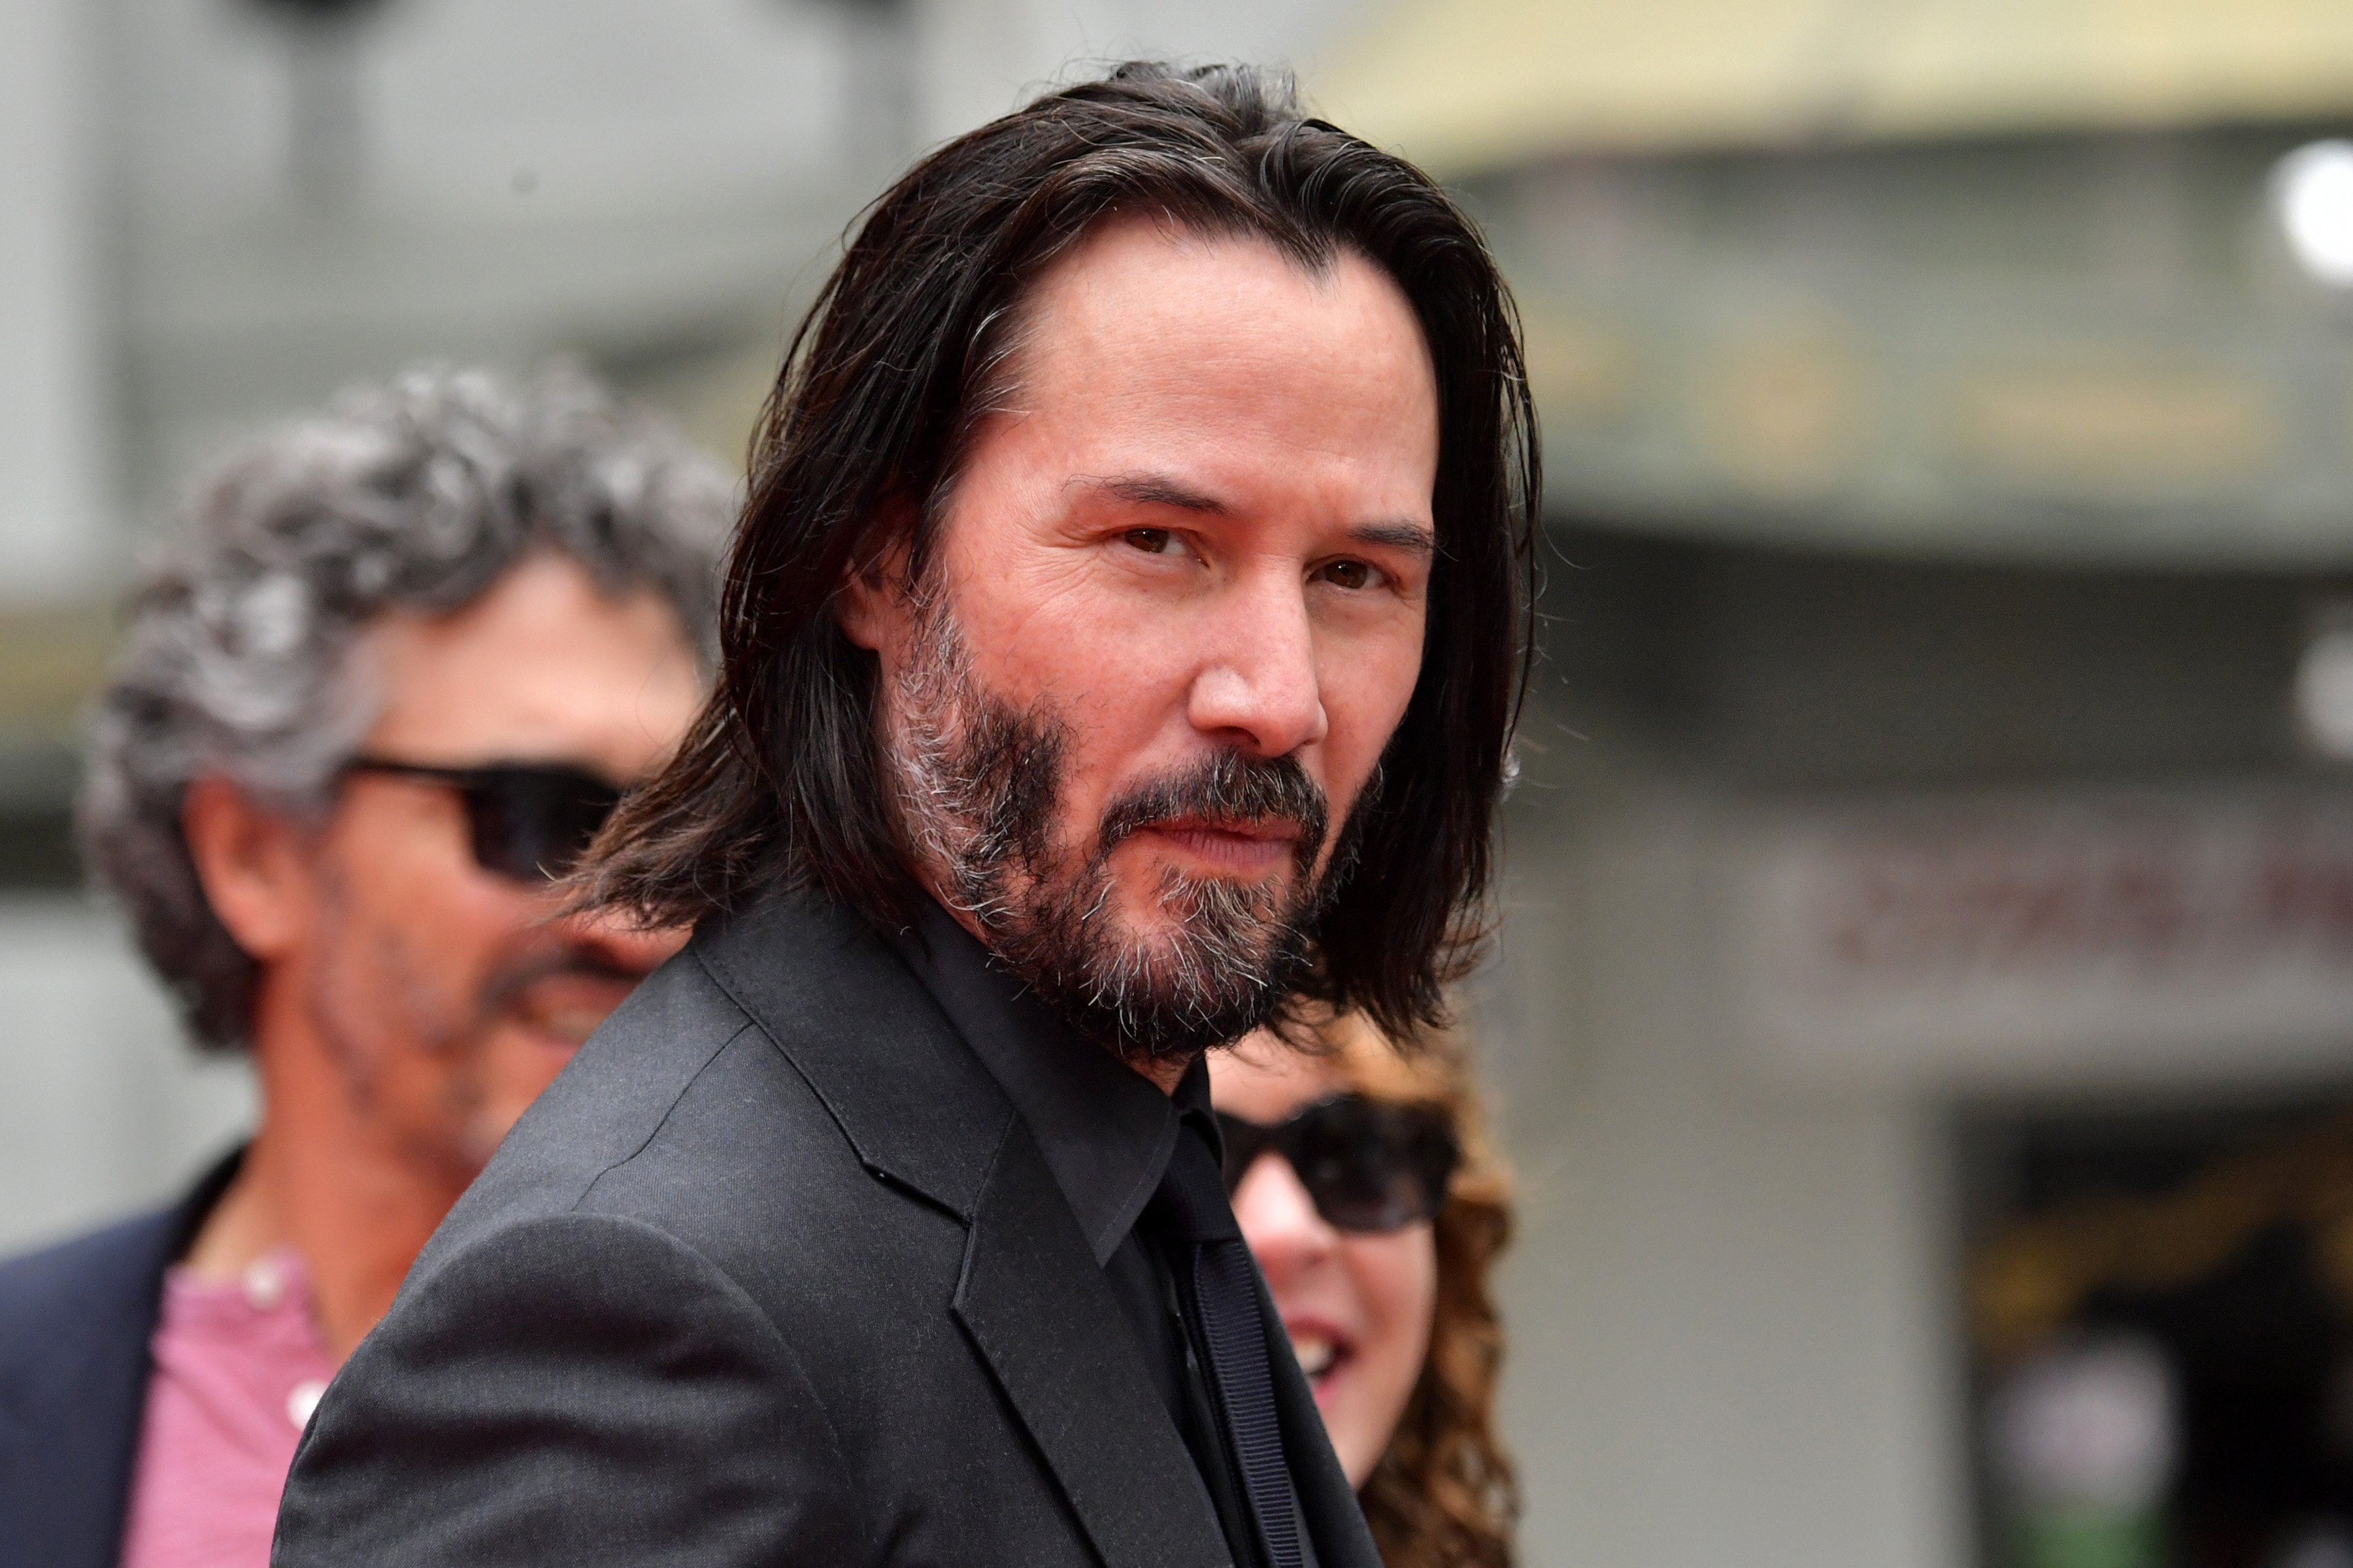 Keanu Reeves arrives for his handprint ceremony on May 14, 2019, in Hollywood, California. | Source: Getty Images.